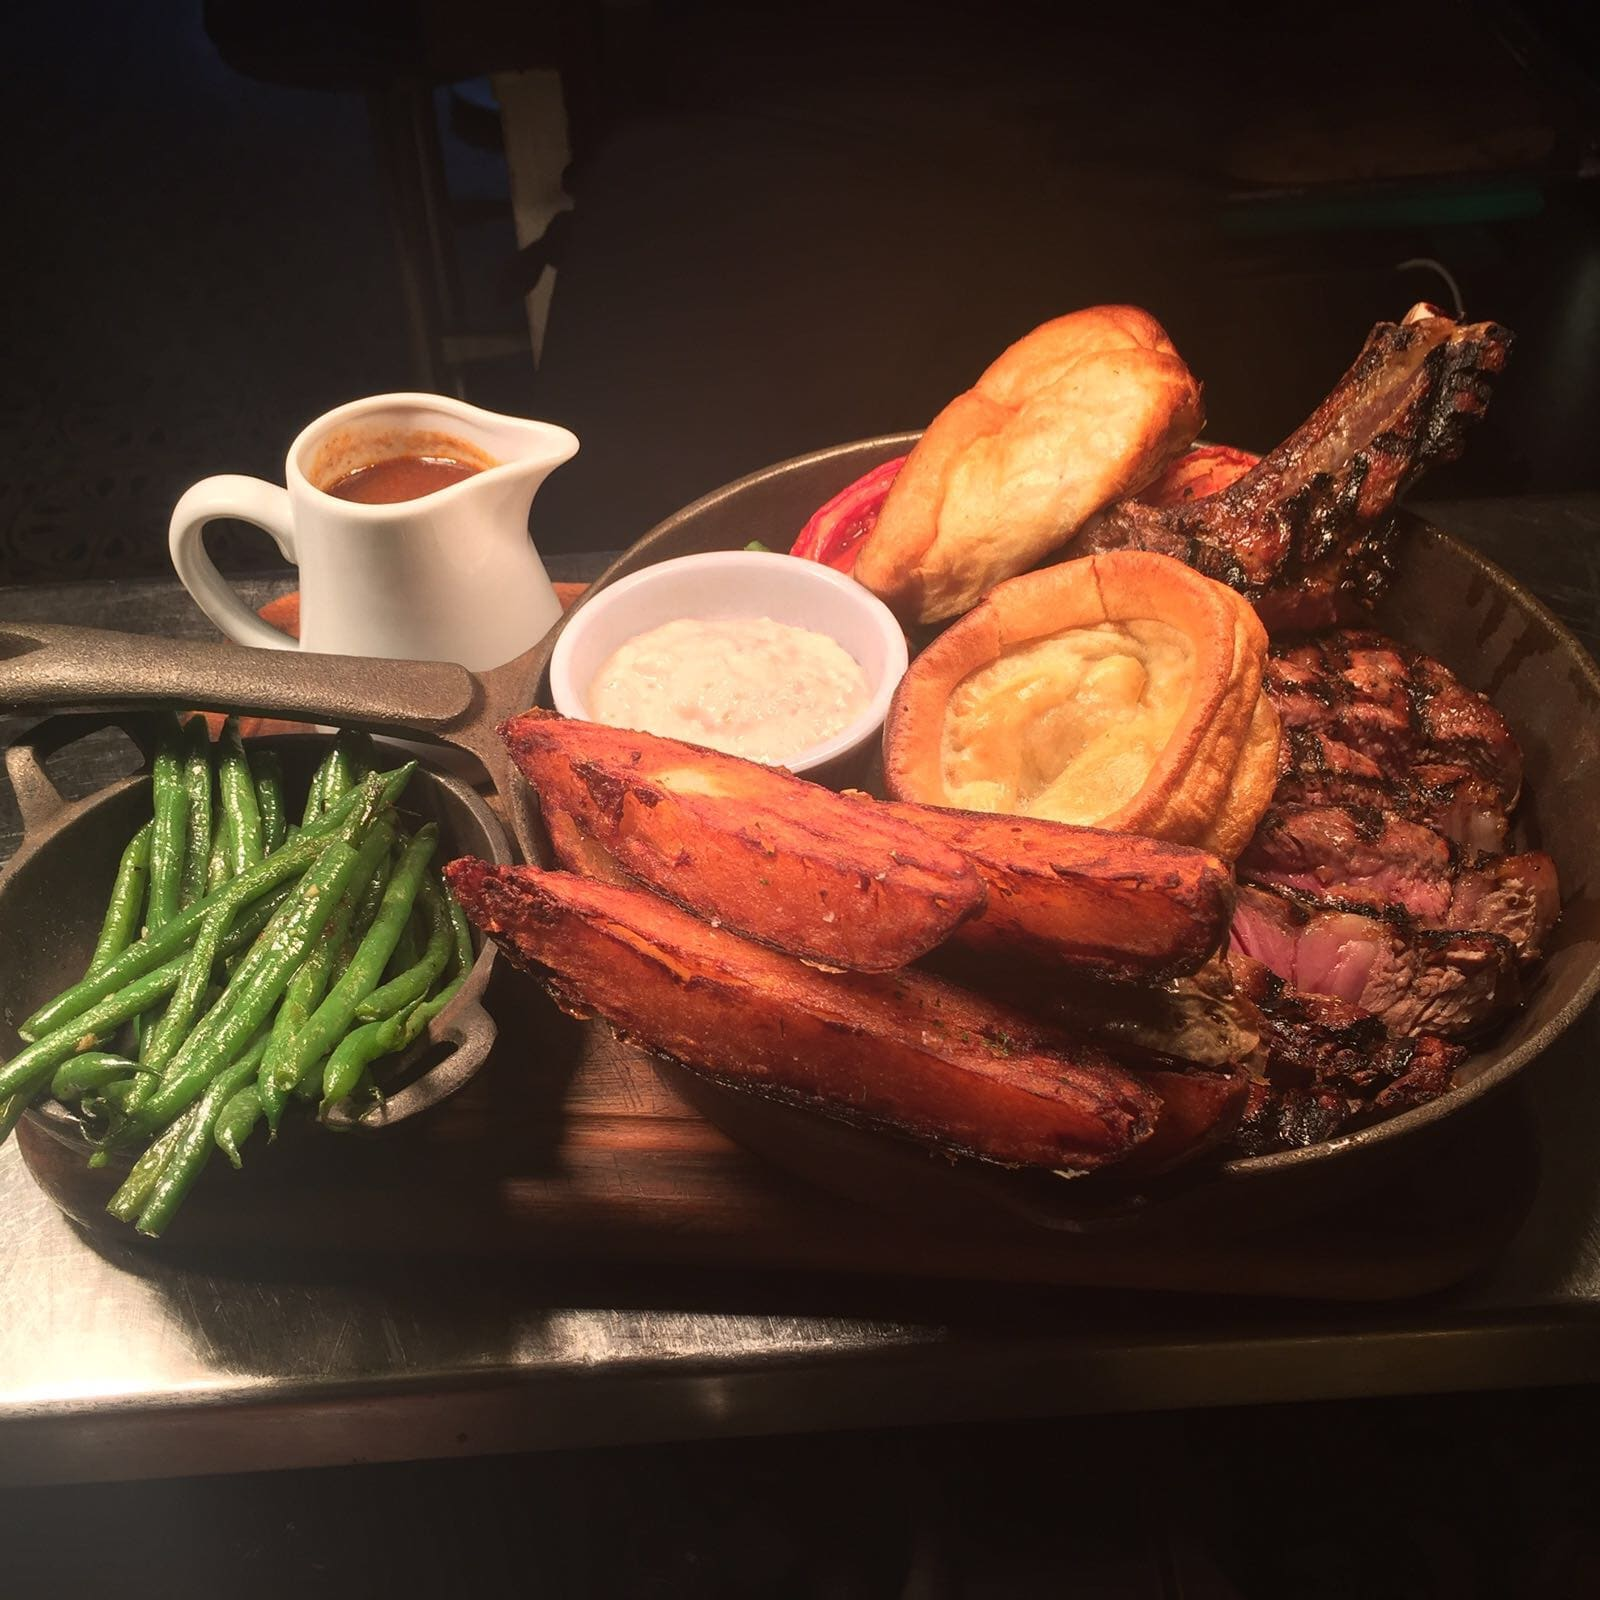 Sunday Roast at the River Bar Steakhouse in Cambridge